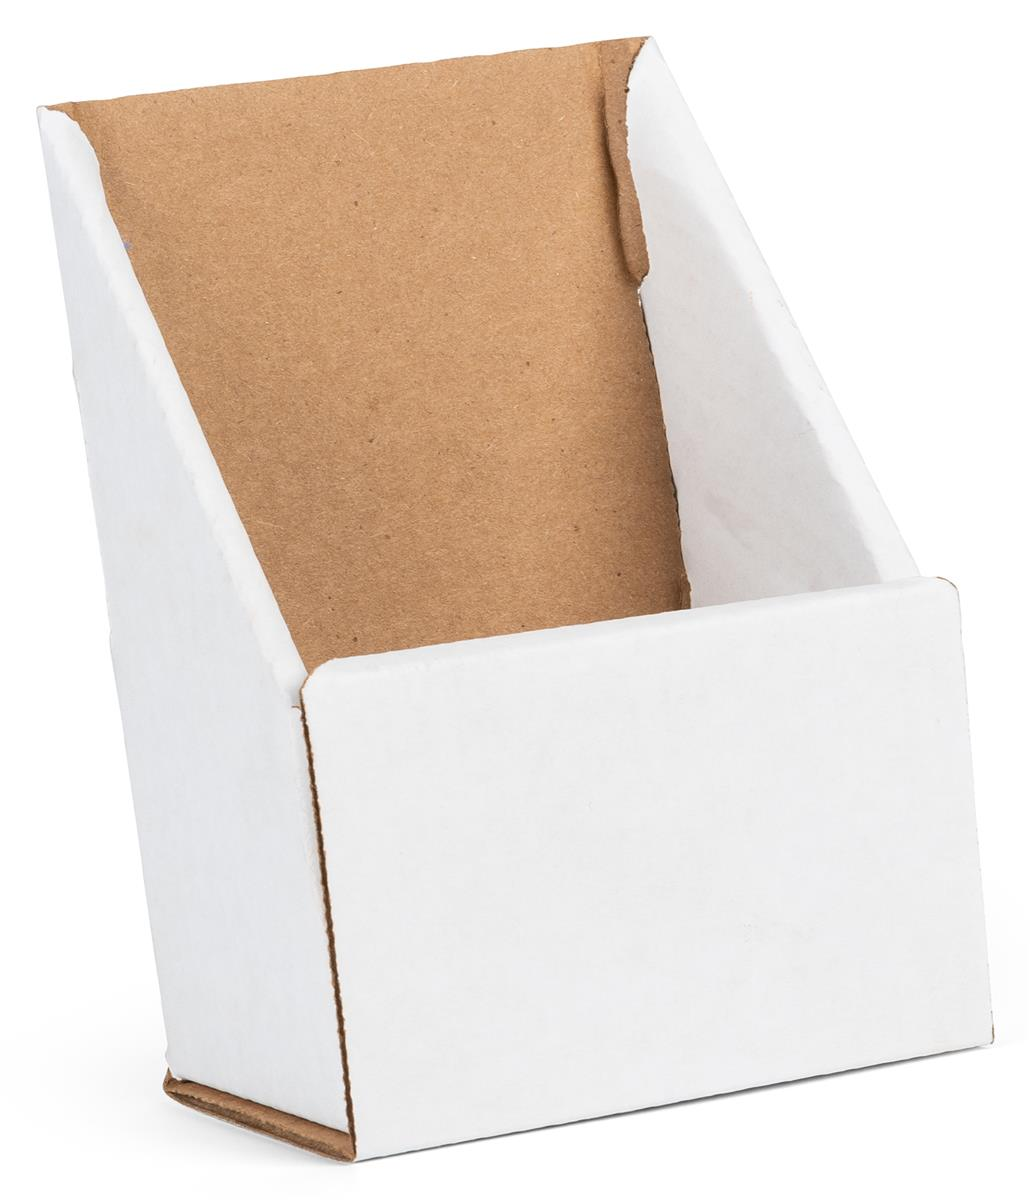 These Cardboard Brochure Holders Feature A Corrugated Box